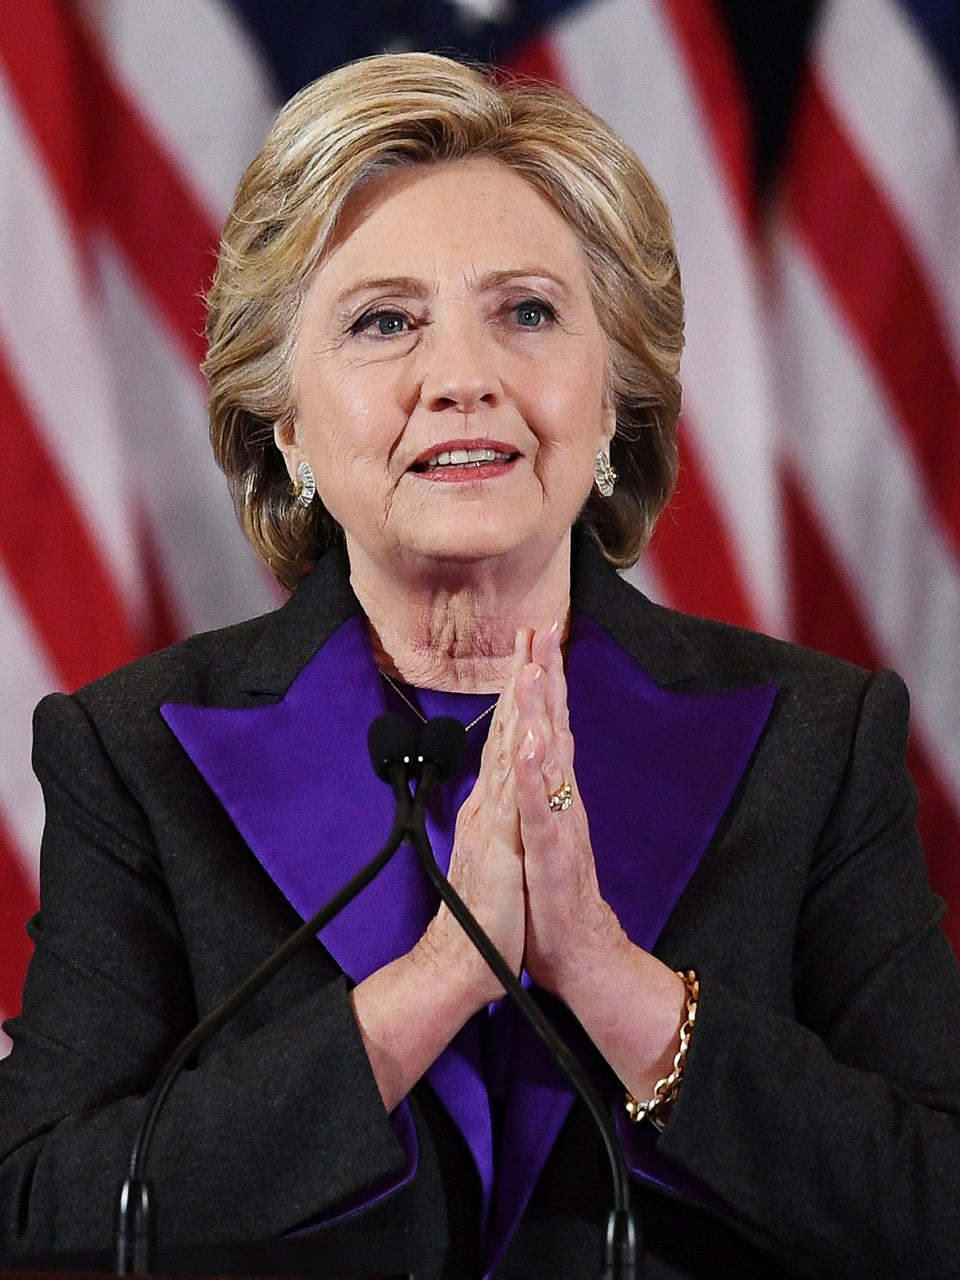 Hillary Clinton Says She's Back: 'I Will Never Stop Speaking Out'